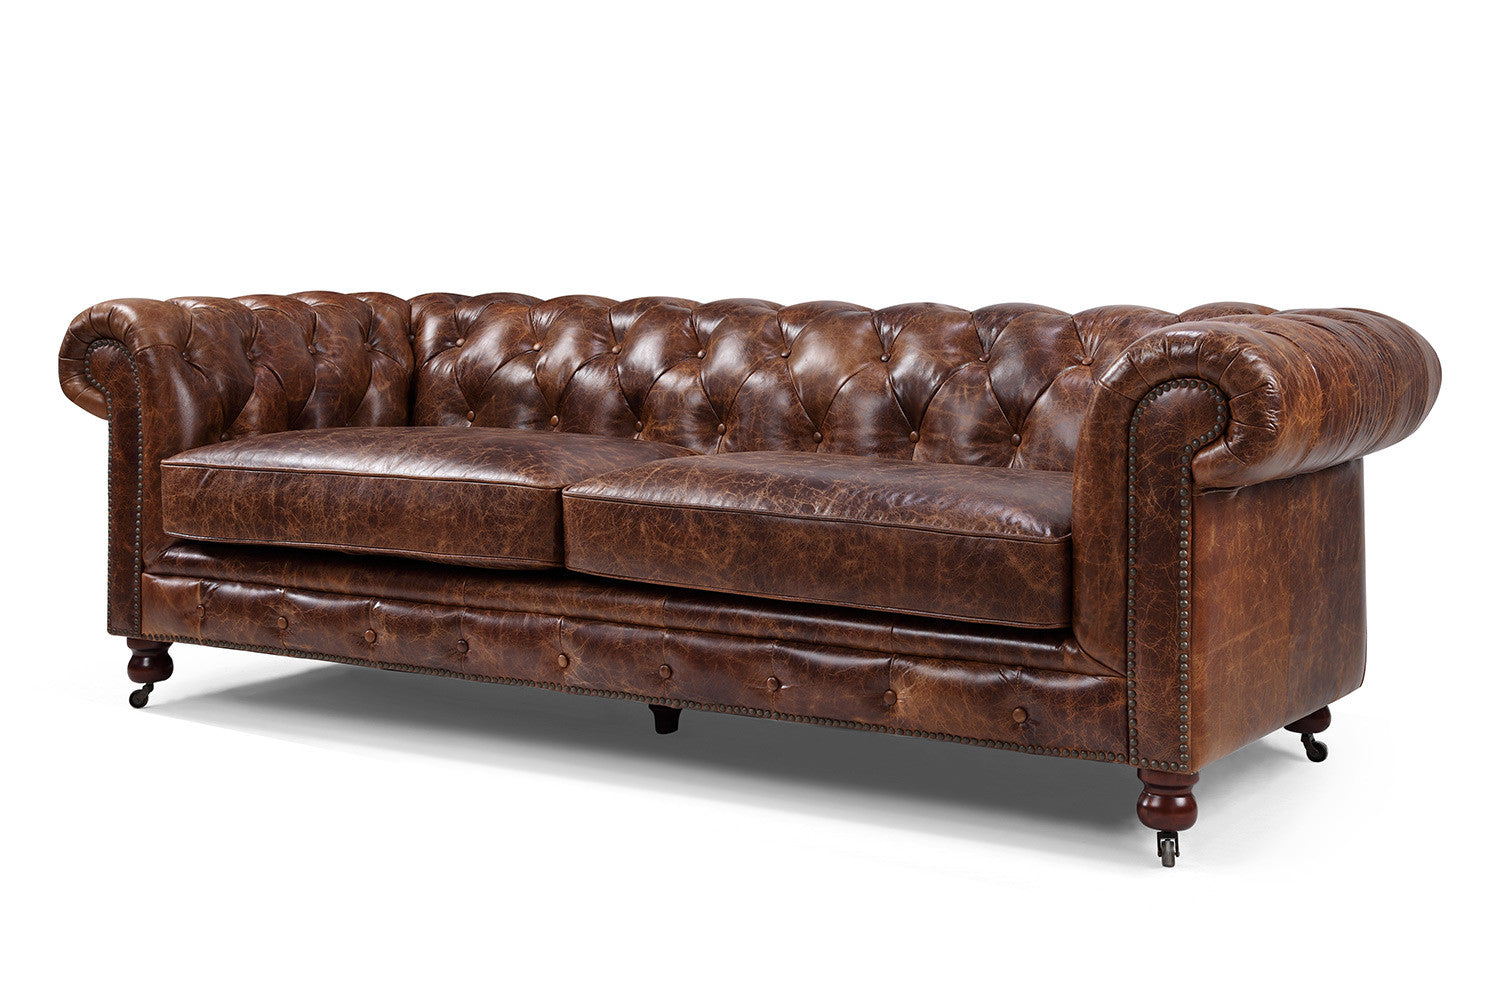 Kensington Chesterfield Tufted Sofa By Rose U0026 Moore